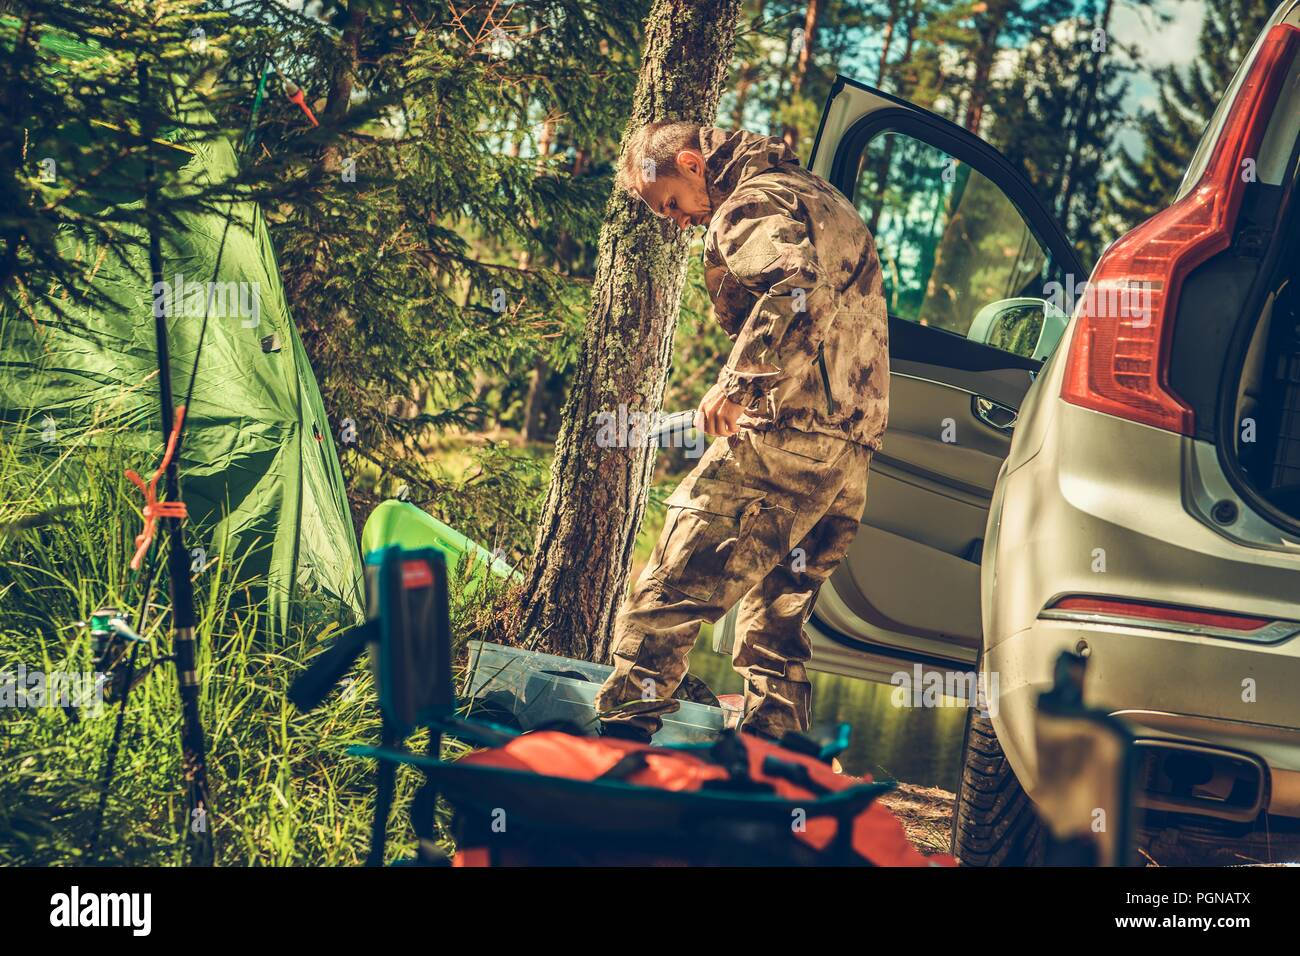 Hunting Season is On. Caucasian Hunter Setup His Camp and the Gear. - Stock Image